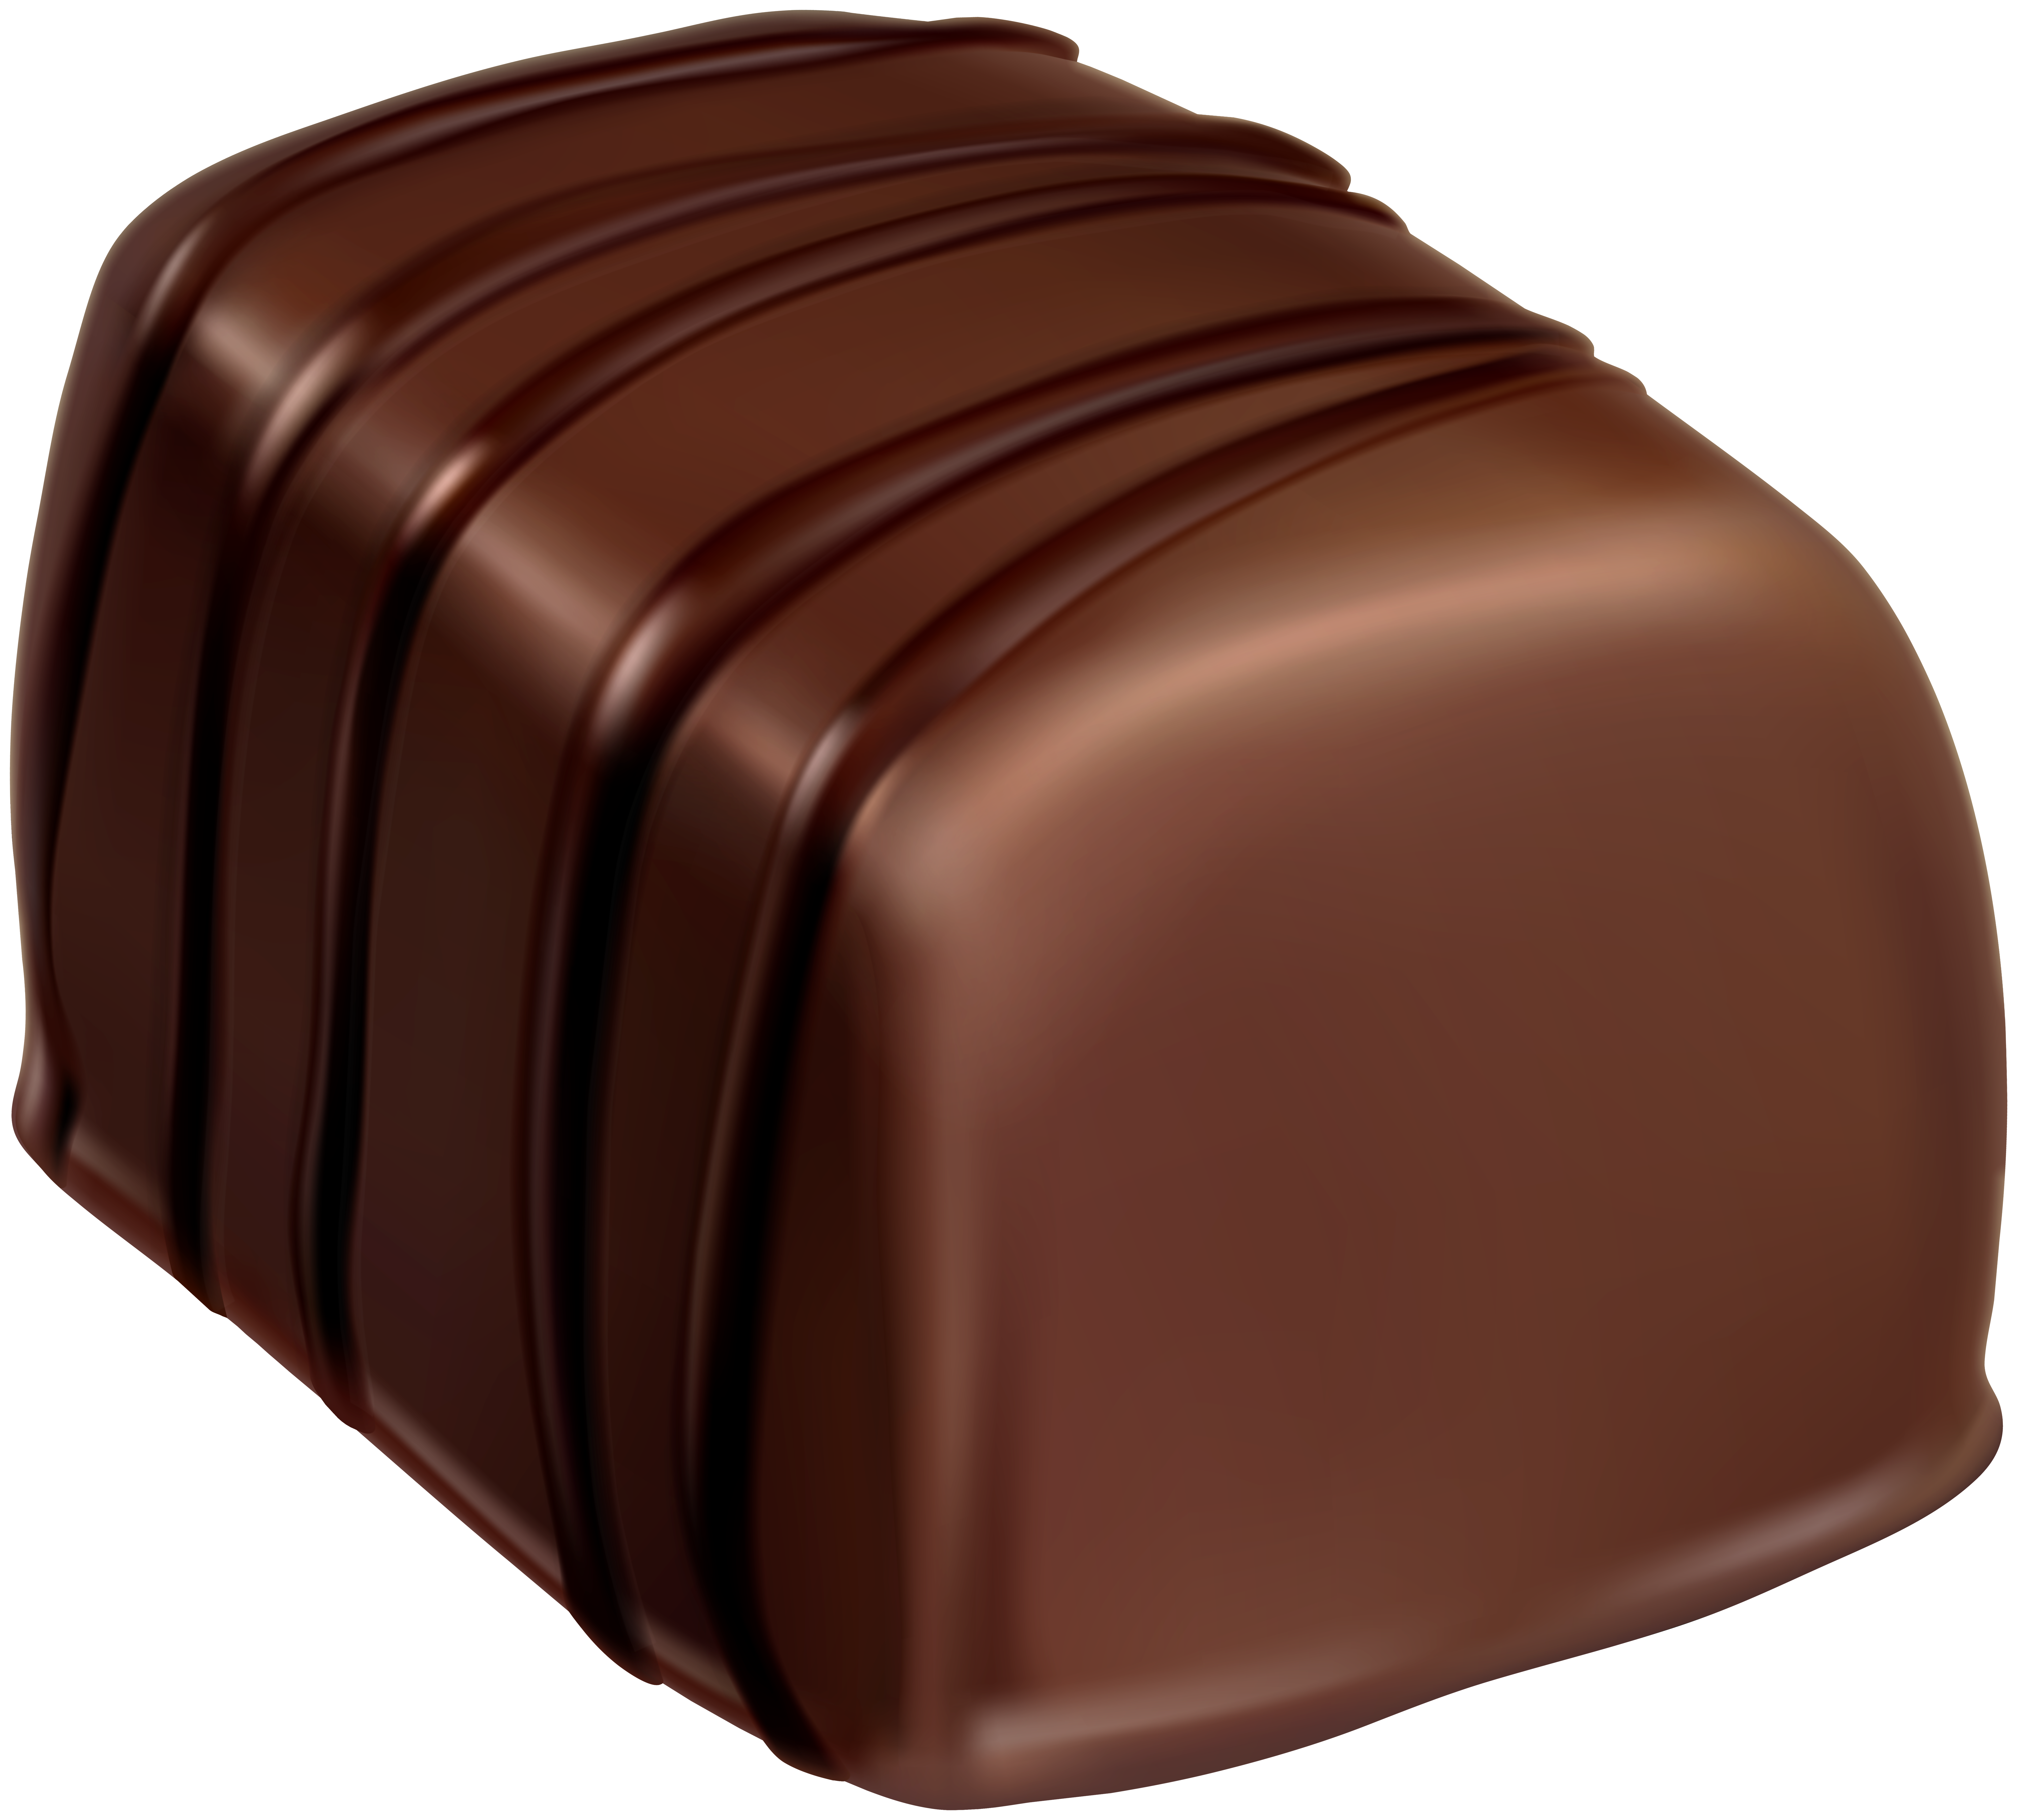 clip library Png clip art image. Chocolate candy clipart.